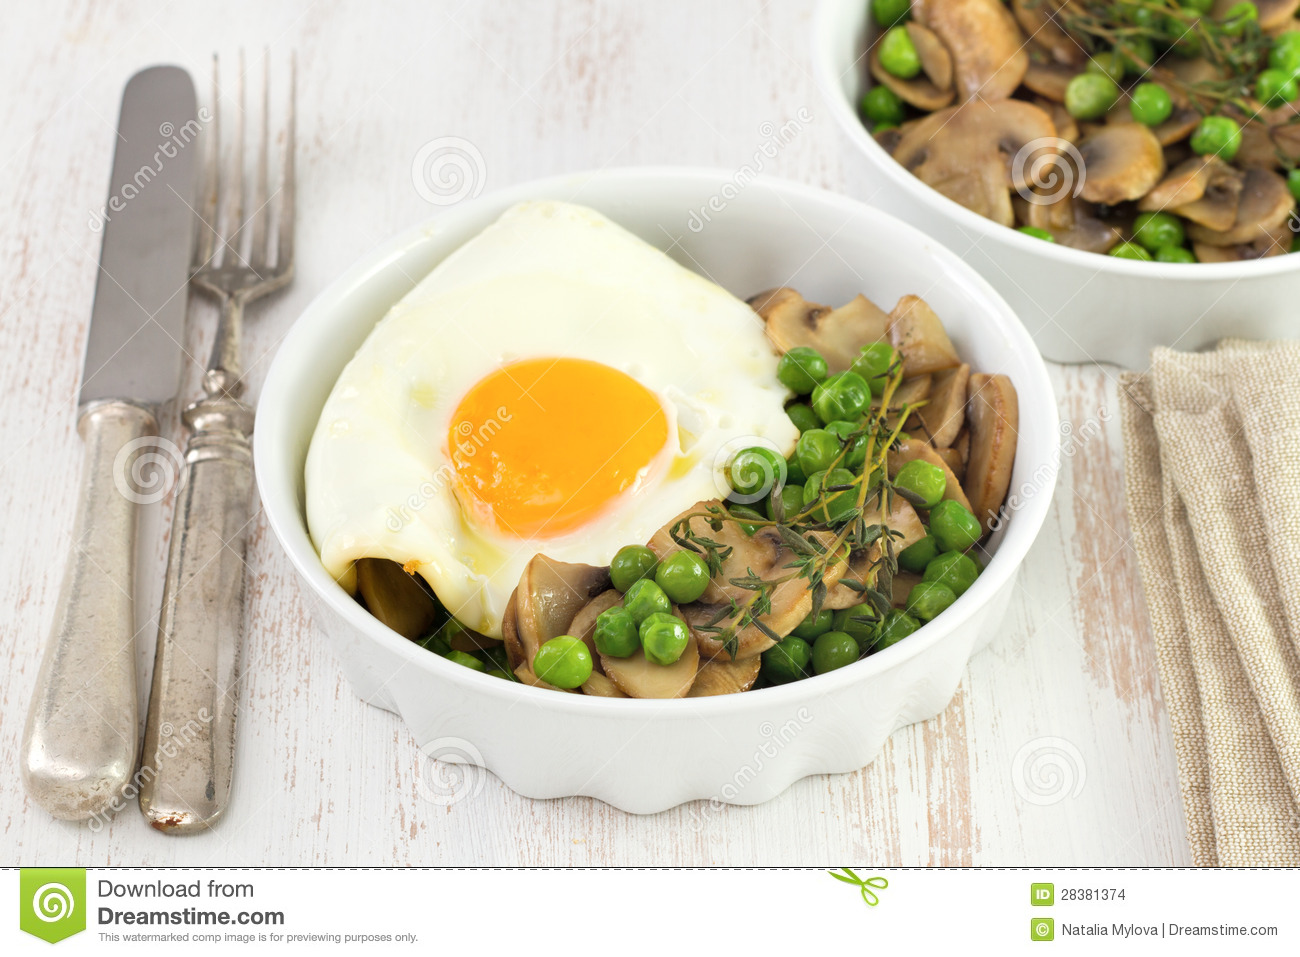 Egg With Peas And Mushrooms Stock Images - Image: 28381374